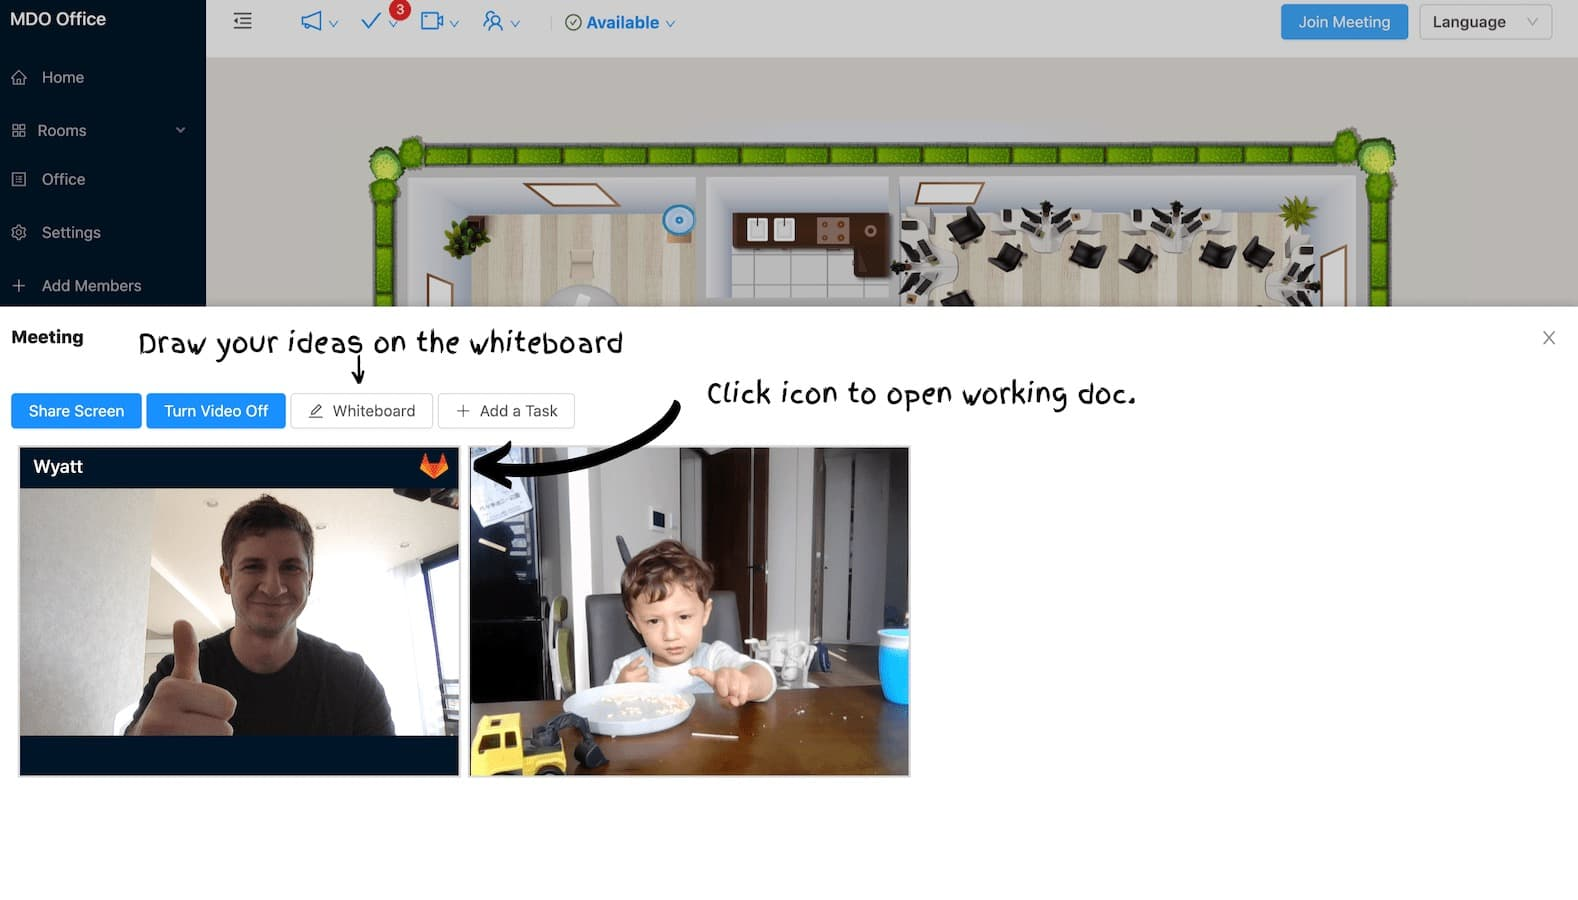 Launch a screen share session or a whiteboard with one click